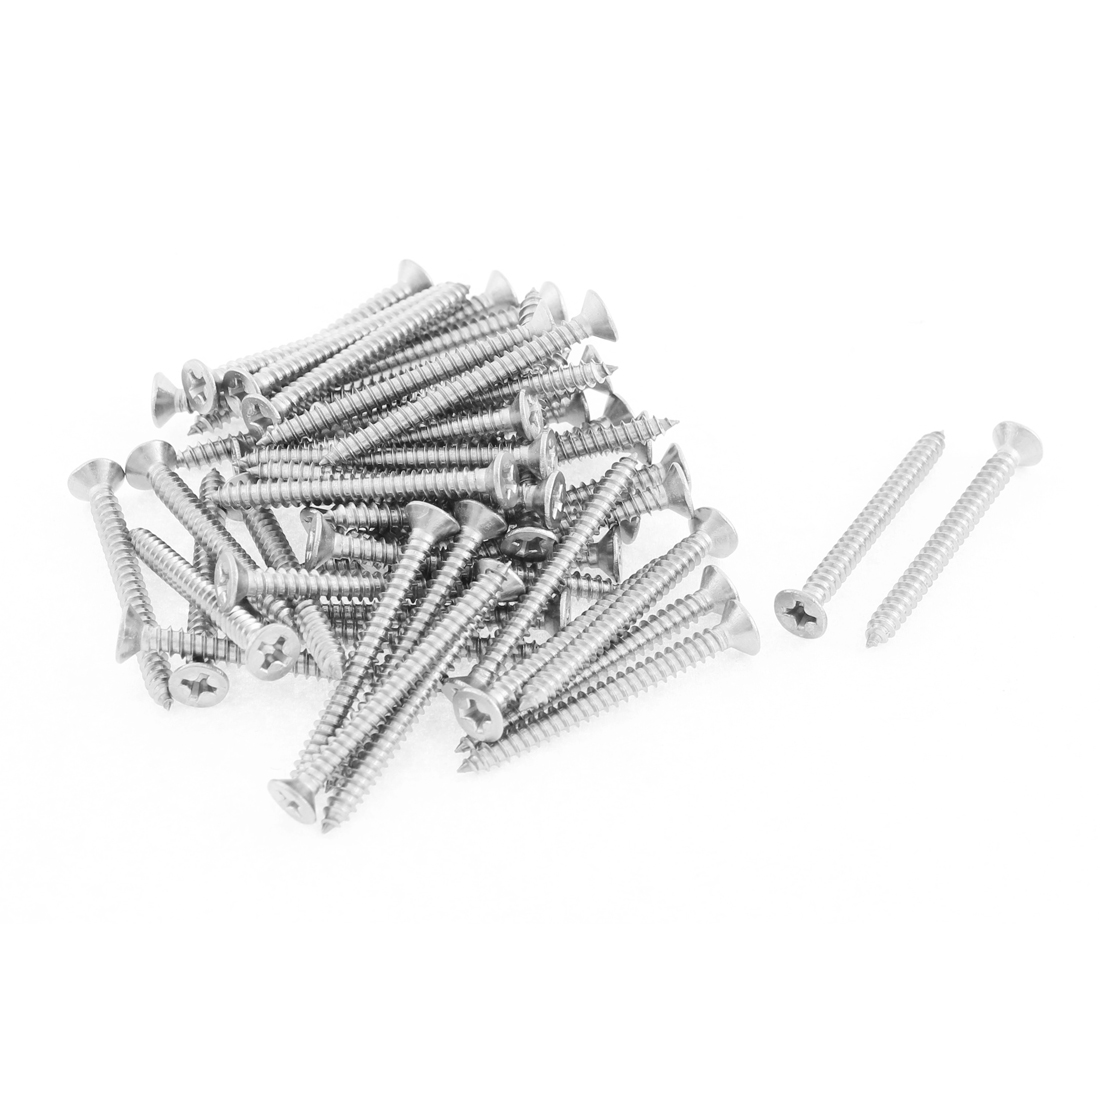 50 Pcs 3.5mmx38mm Stainless Steel Phillips Flat Head Sheet Self Tapping Screws